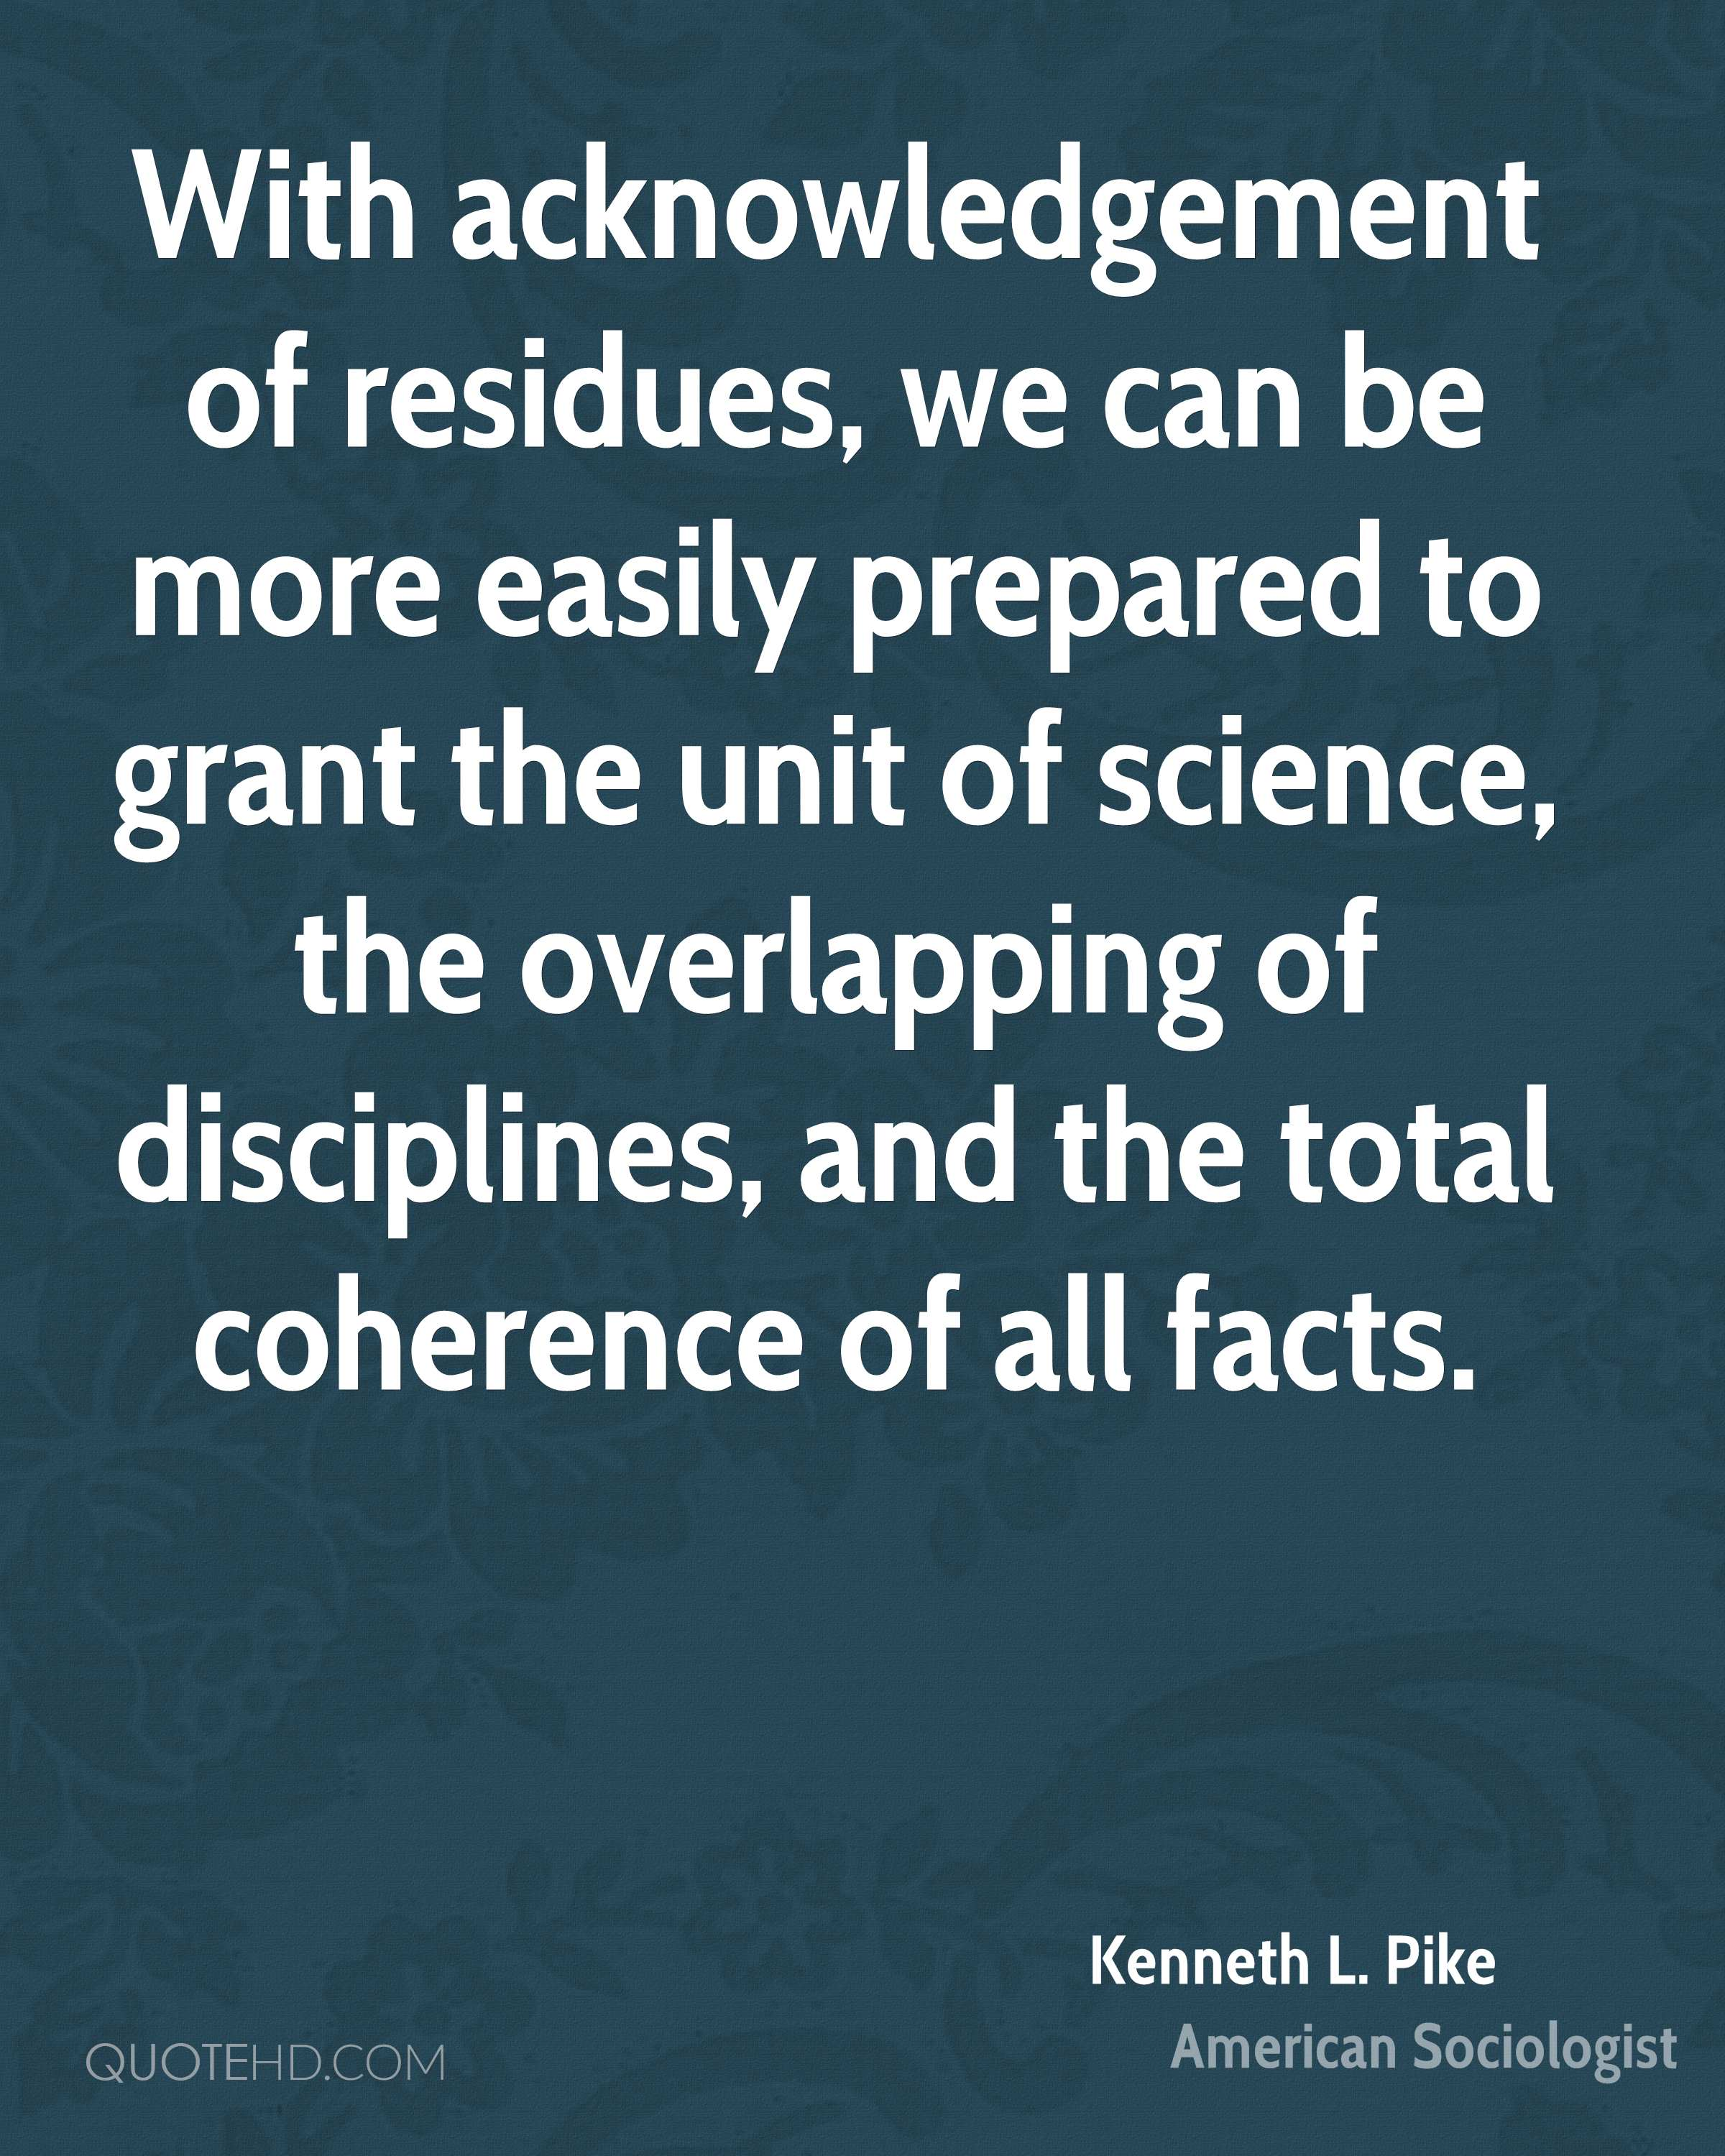 With acknowledgement of residues, we can be more easily prepared to grant the unit of science, the overlapping of disciplines, and the total coherence of all facts.